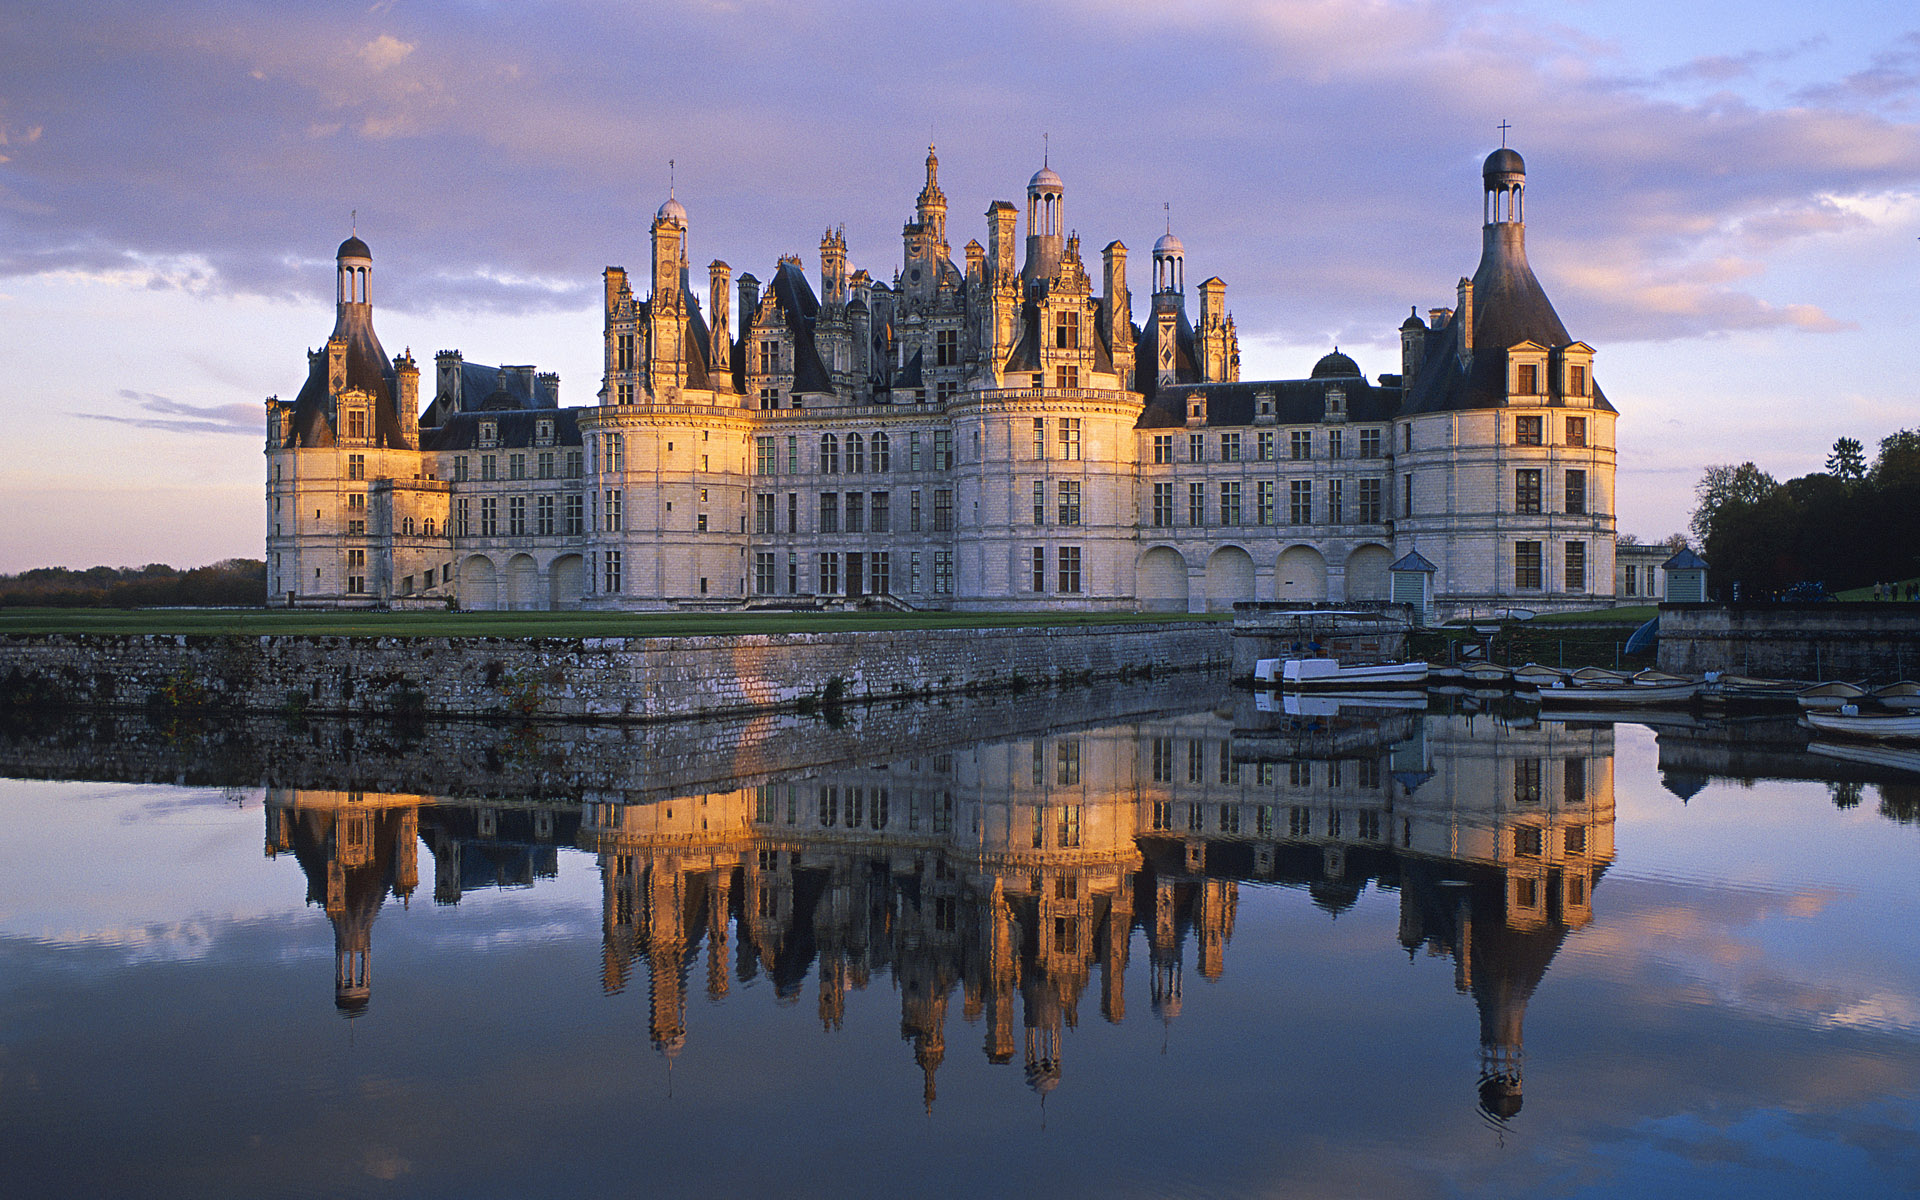 man made castle france chateau de chambord wallpaper - Castle